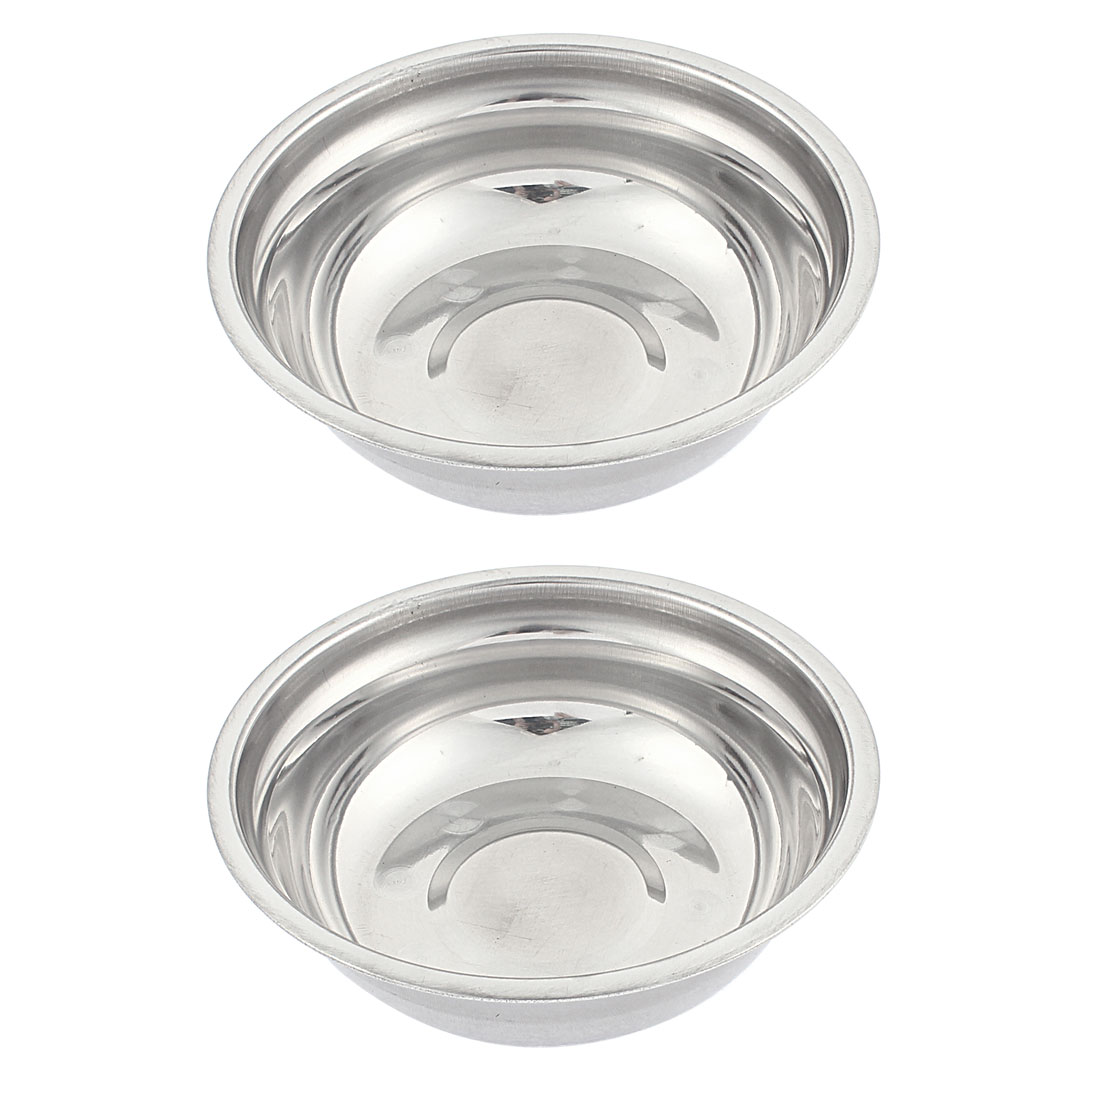 Home Round Shaped Dinner Soup Rice Food Bowl 2Pcs